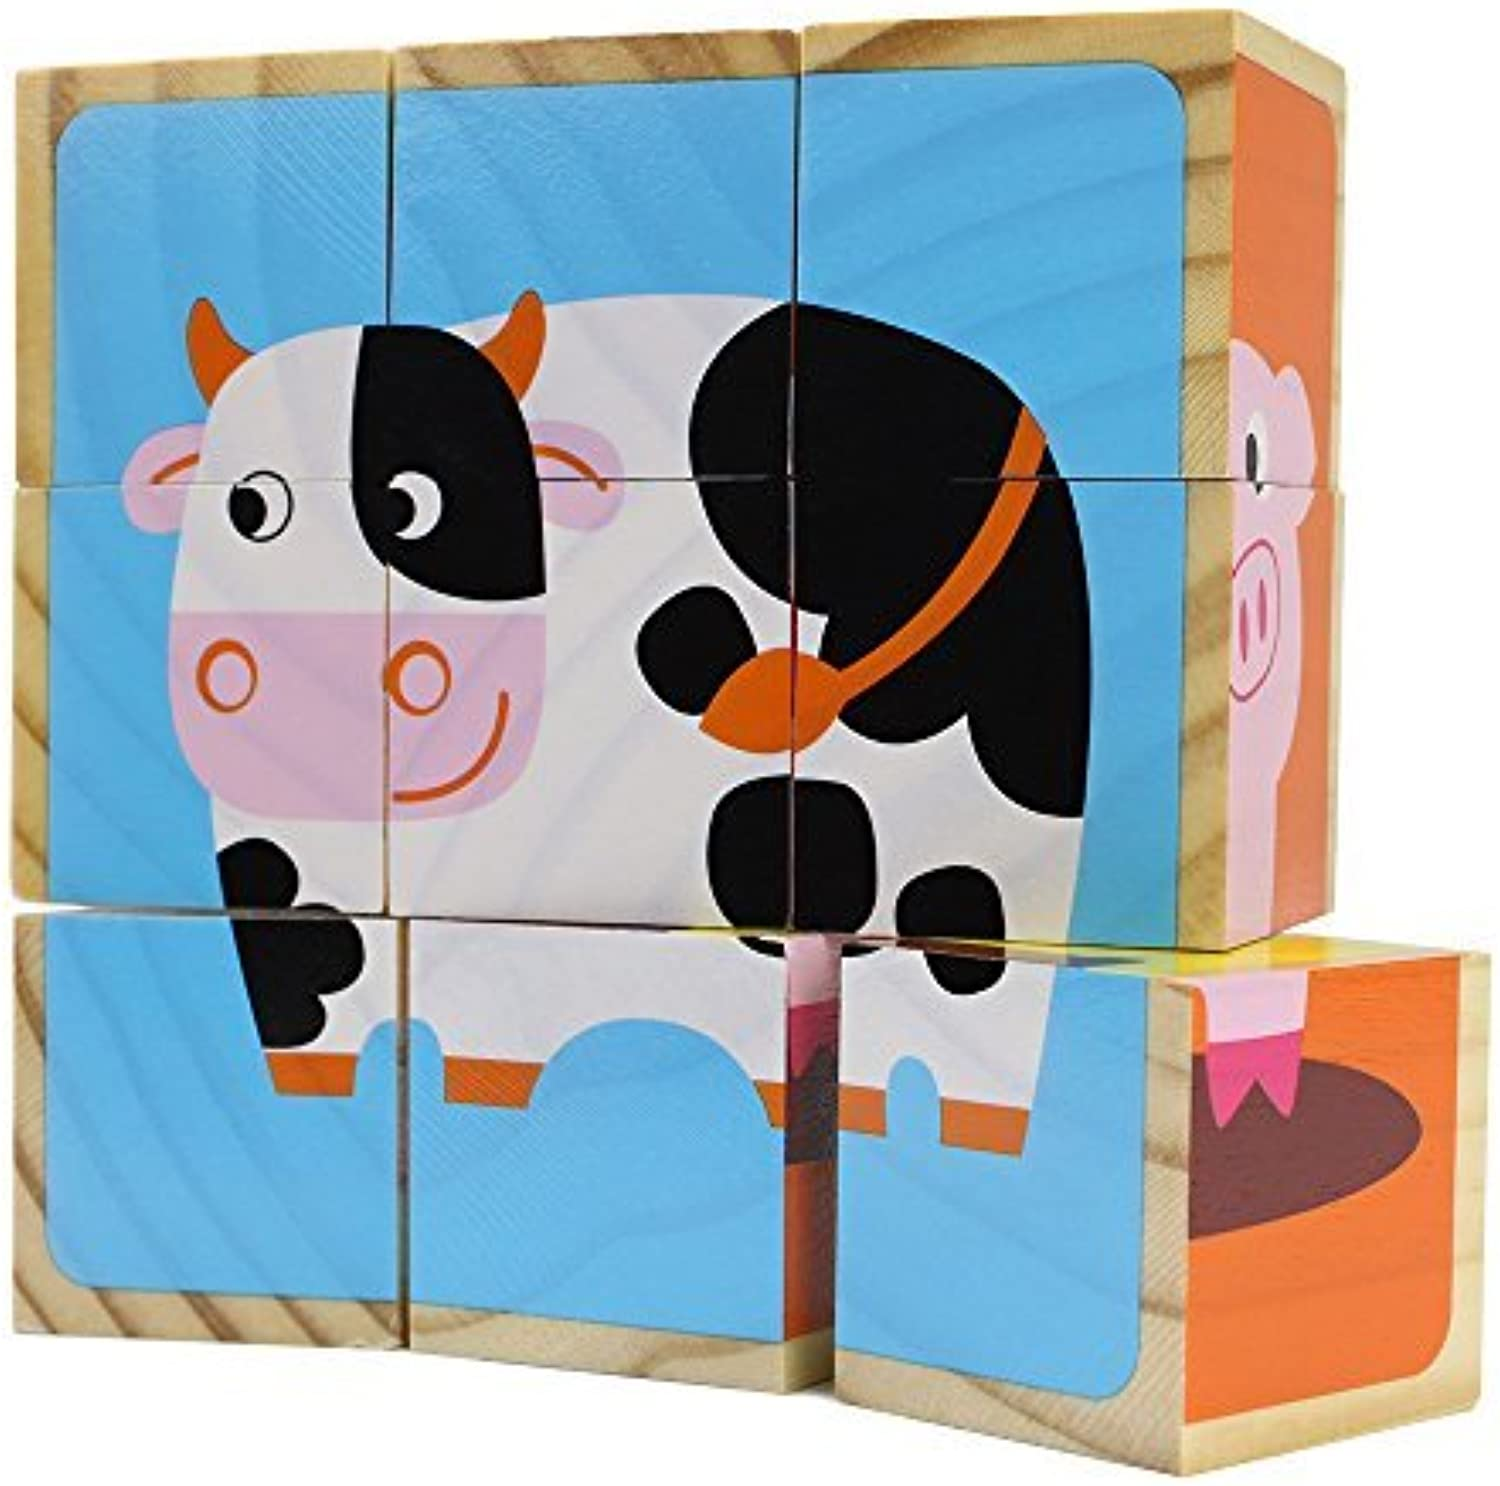 Professor Poplar's Barnyard Animals Stacking Puzzle Blocks, 9 Pieces by Imagination Generation